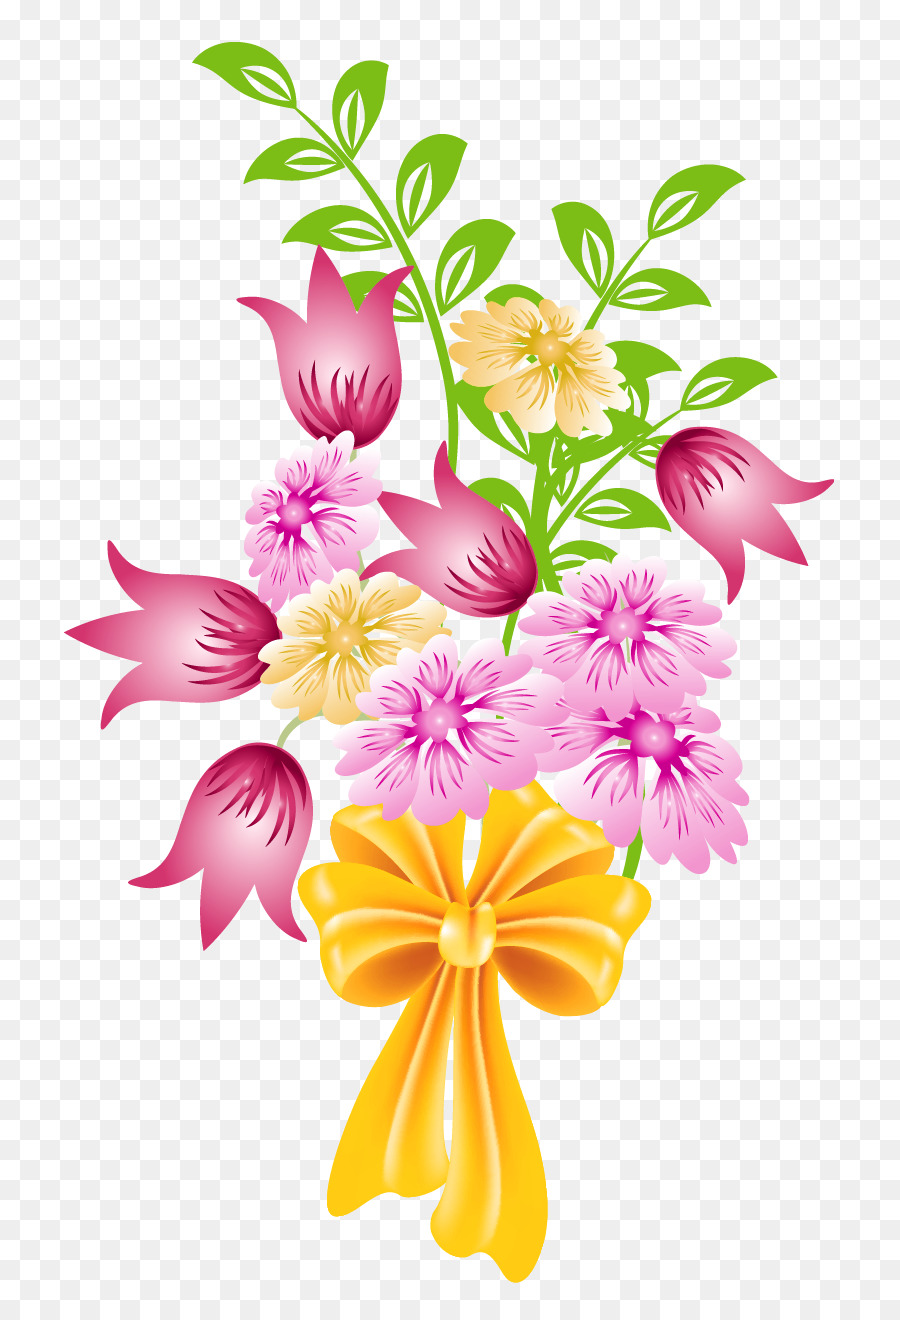 Flower bouquet clipart transparent graphic free stock Wedding Flower Background png download - 836*1317 - Free Transparent ... graphic free stock